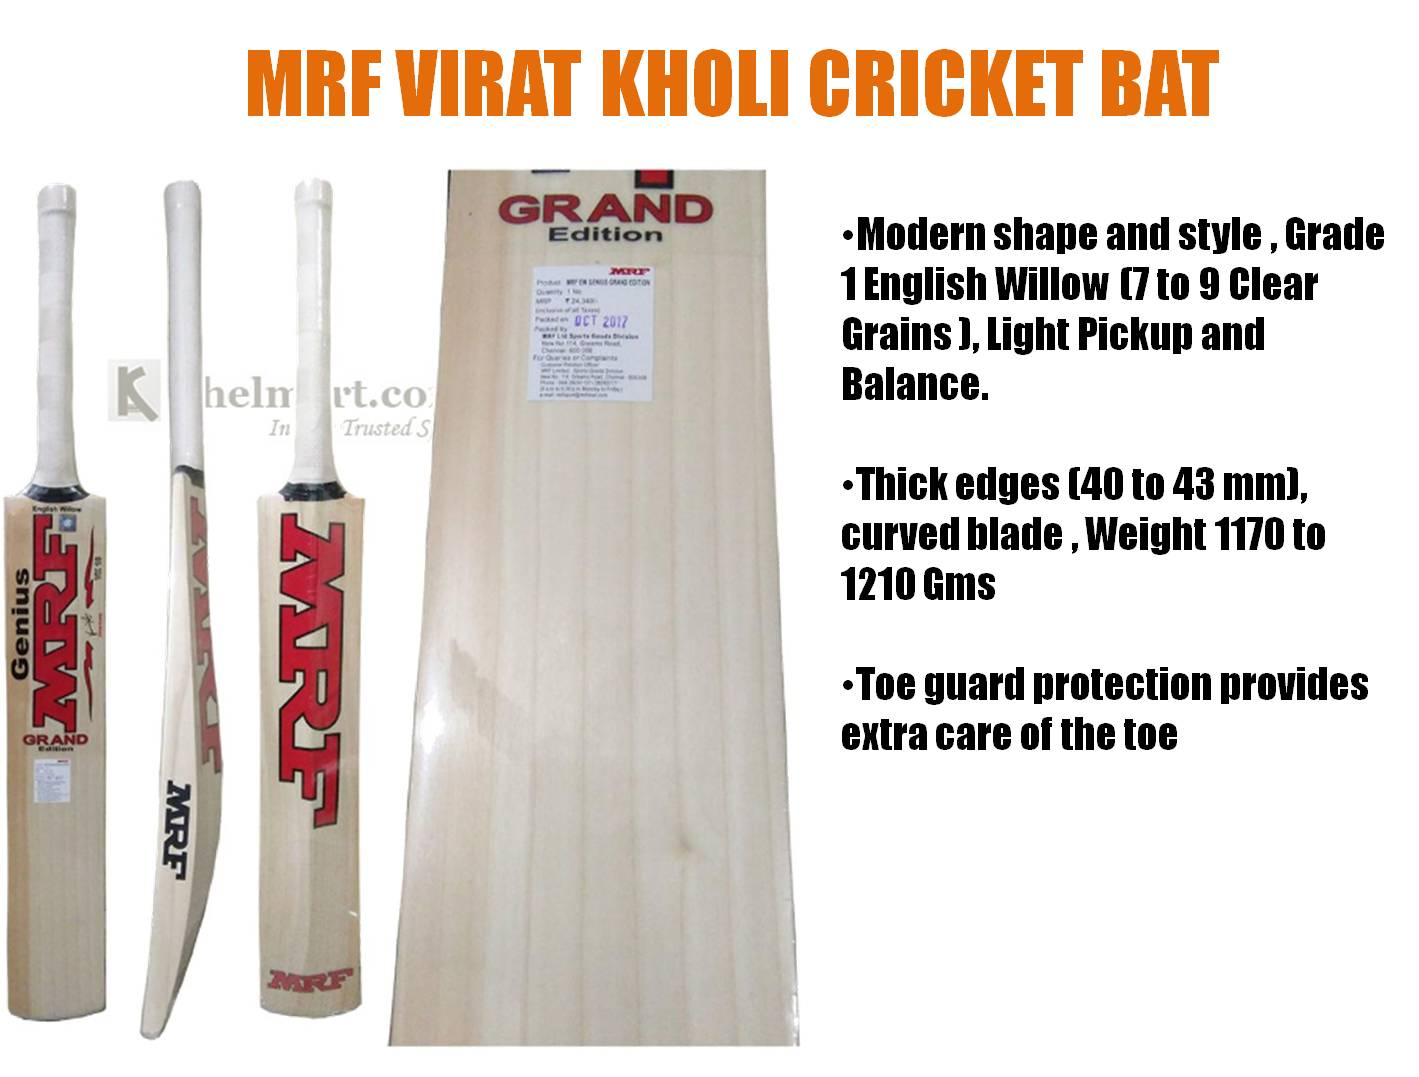 MRF_VIRAT_KHOLI_CRICKET_BAT.jpg